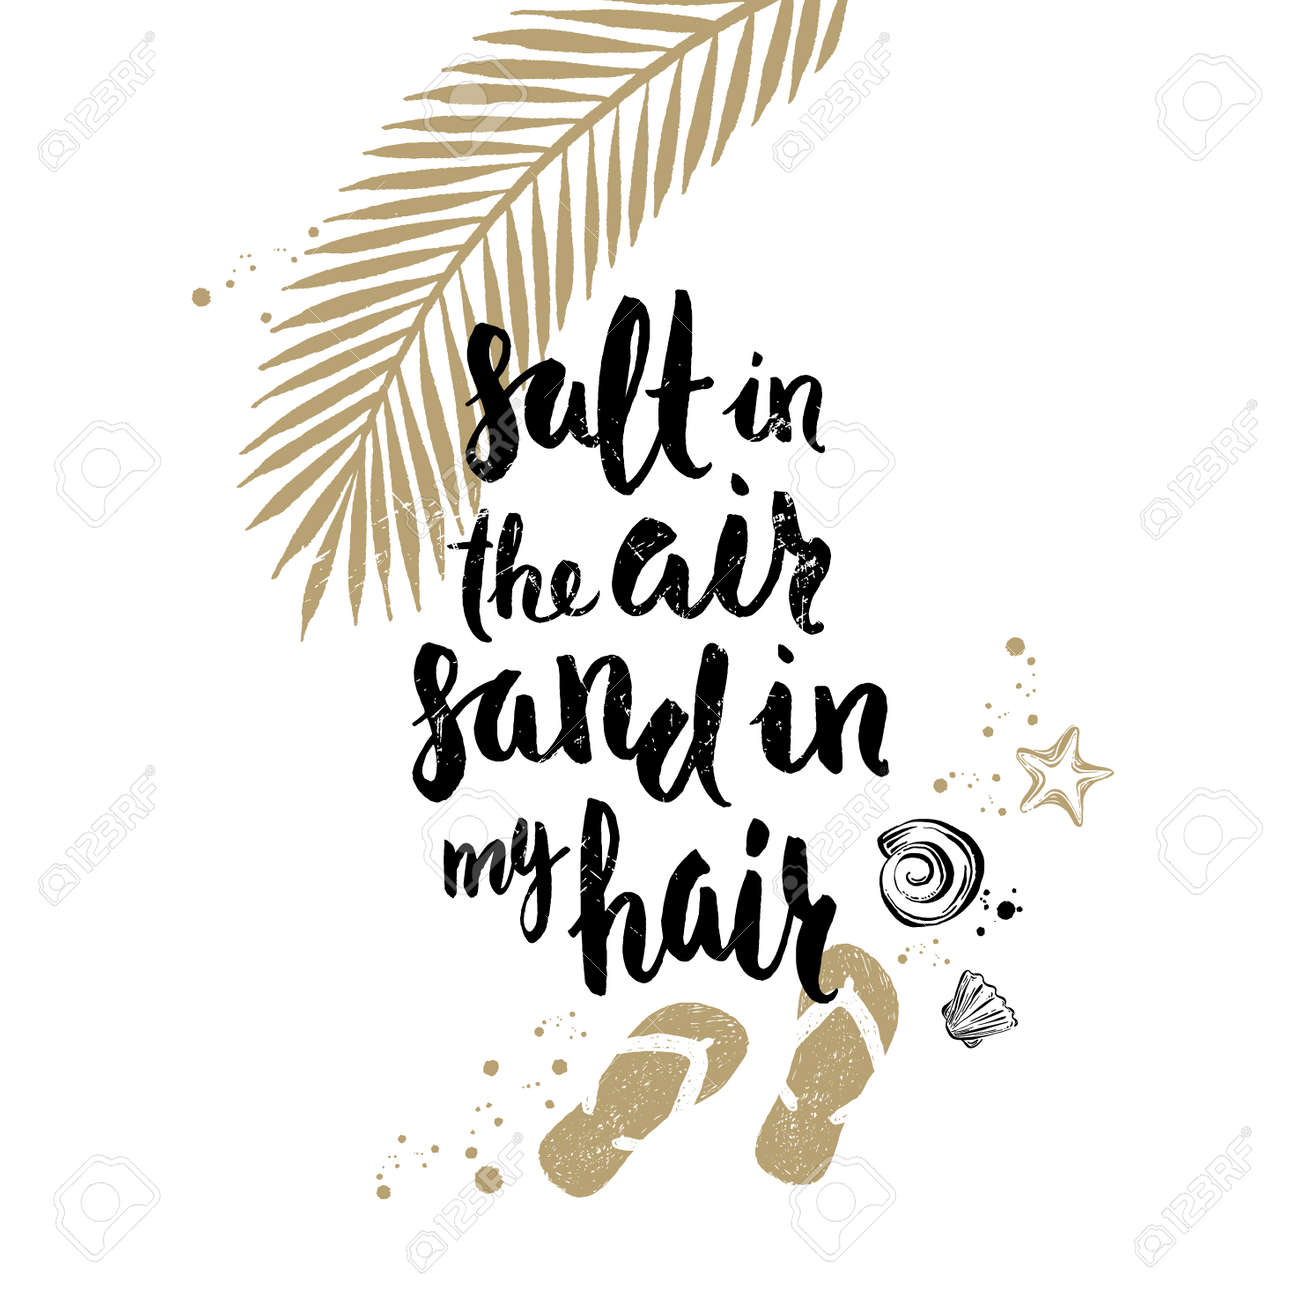 Salt In The Air Sand In My Hair Summer Holidays And Vacation